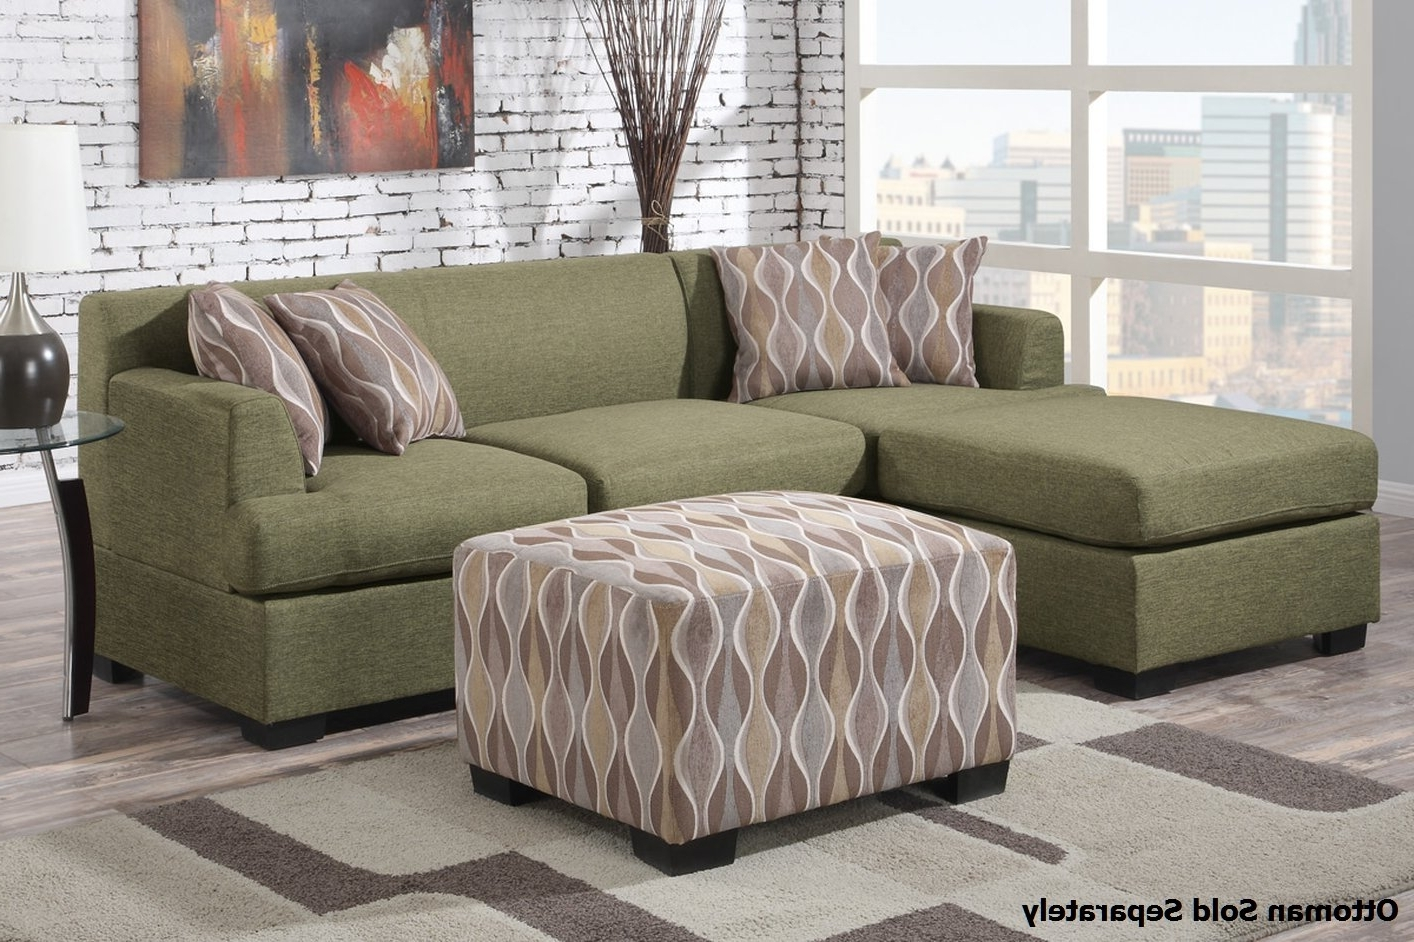 Widely Used Montreal Sectional Sofas Pertaining To Montreal Ii Green Fabric Sectional Sofa – Steal A Sofa Furniture (View 15 of 15)